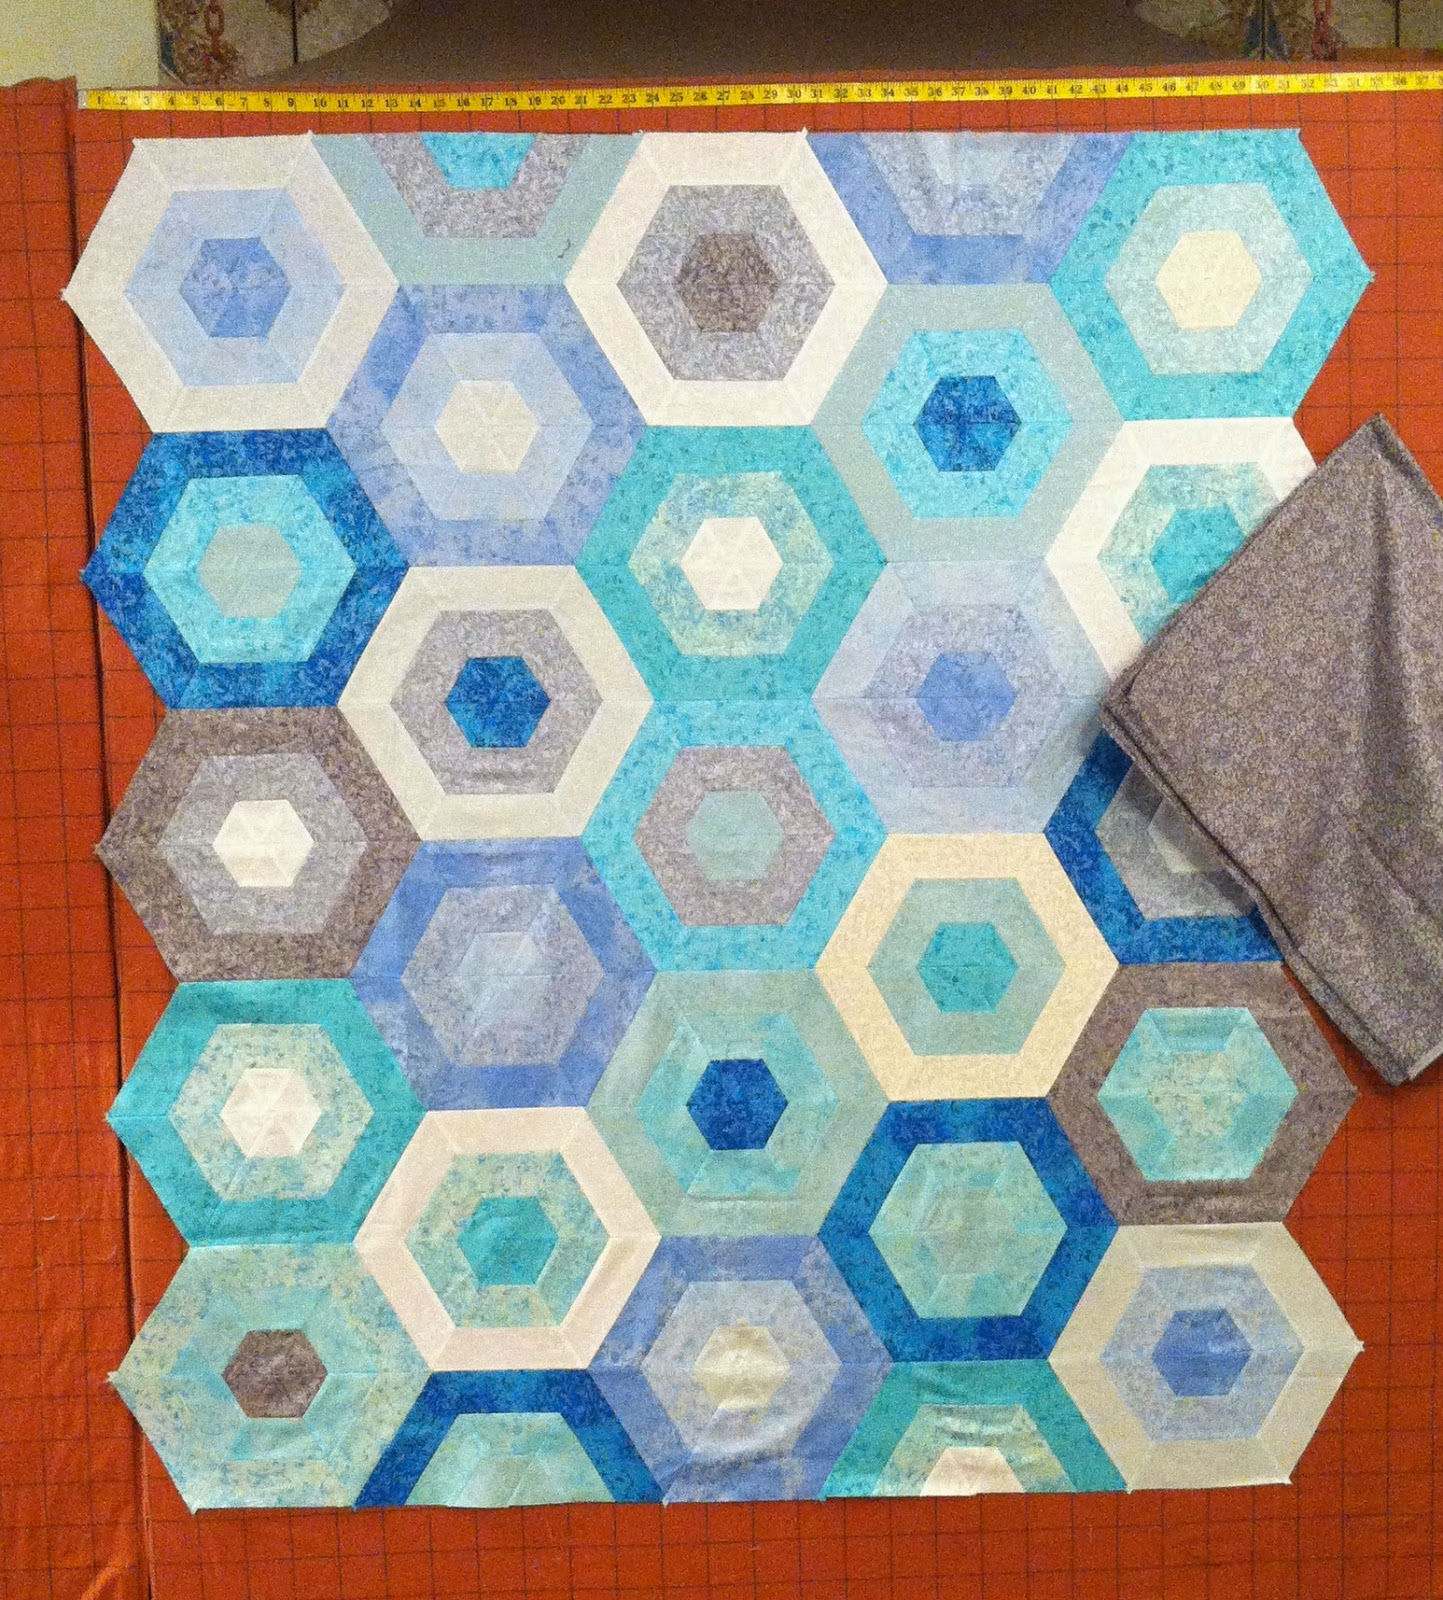 Hexagon Quilt - Love the colors and the overall look here!